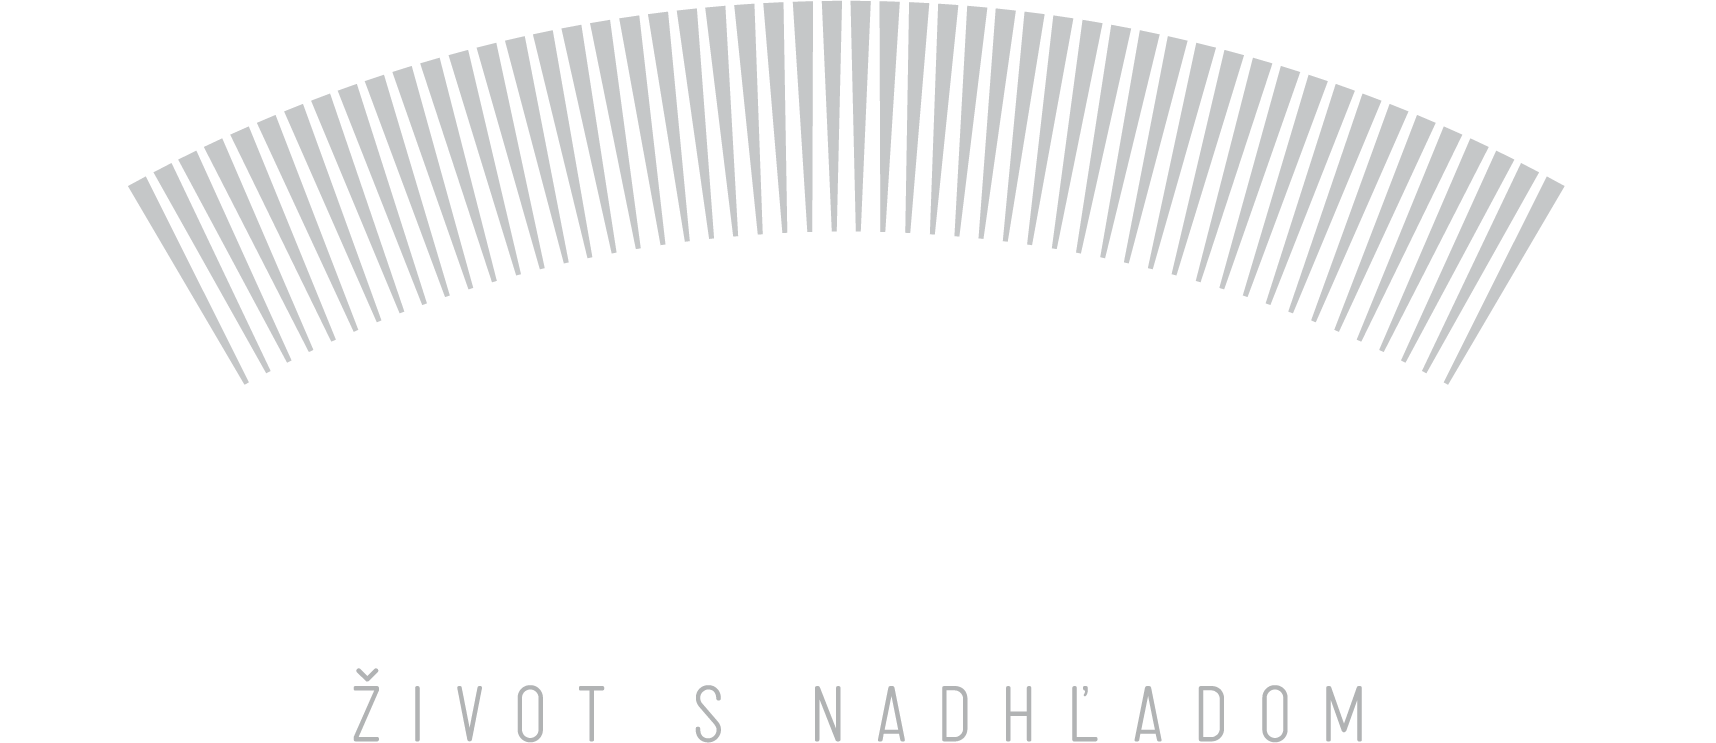 panorama city logo